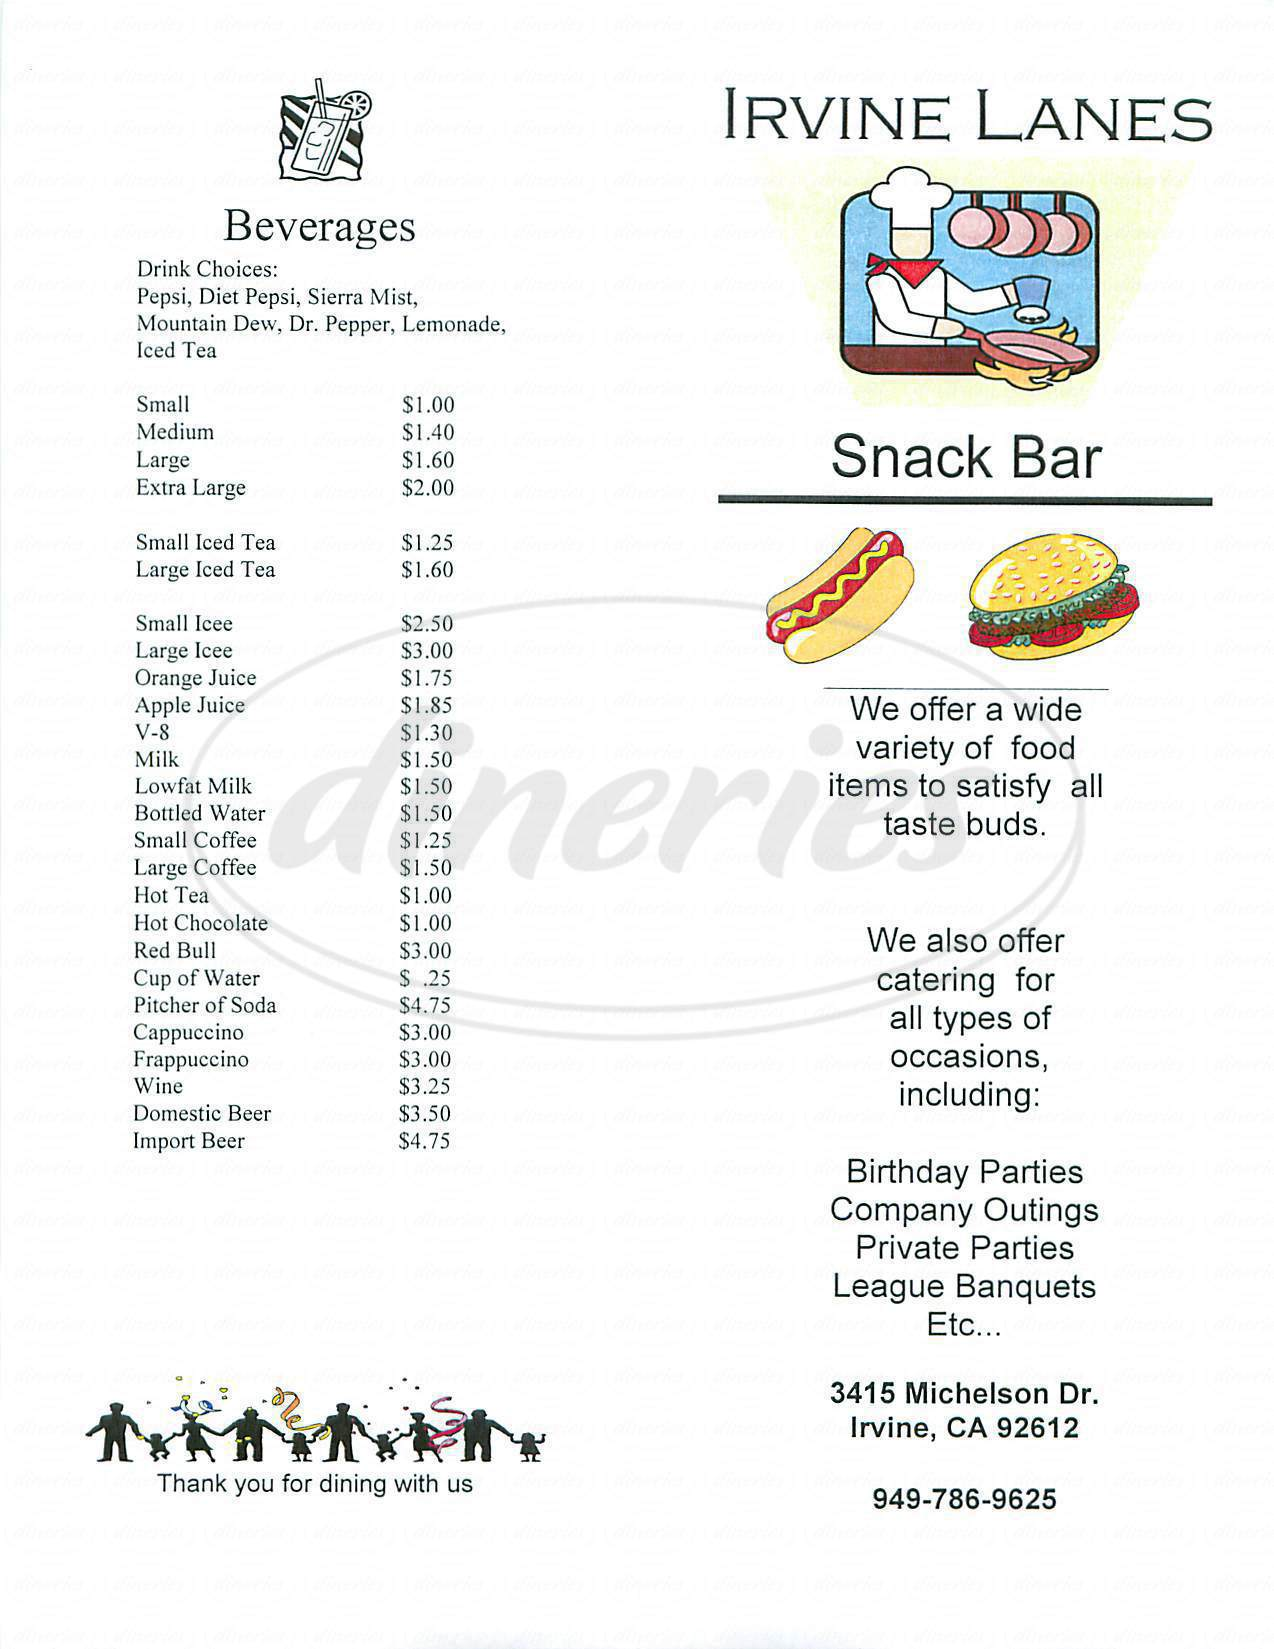 menu for Irvine Lanes Snack Bar